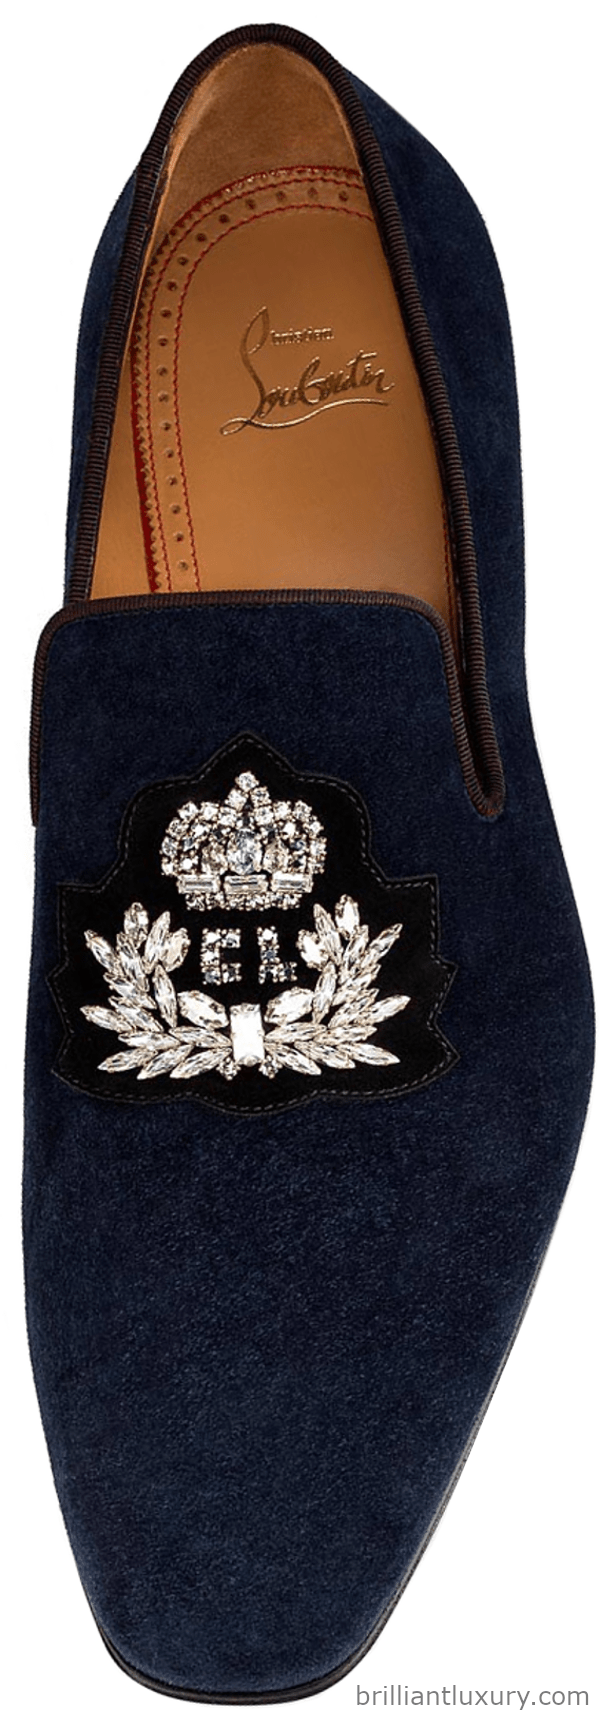 Christian Louboutin Logo Dandelion loafers in navy velvet featuring a hand-sewn embroidered strass logo crest